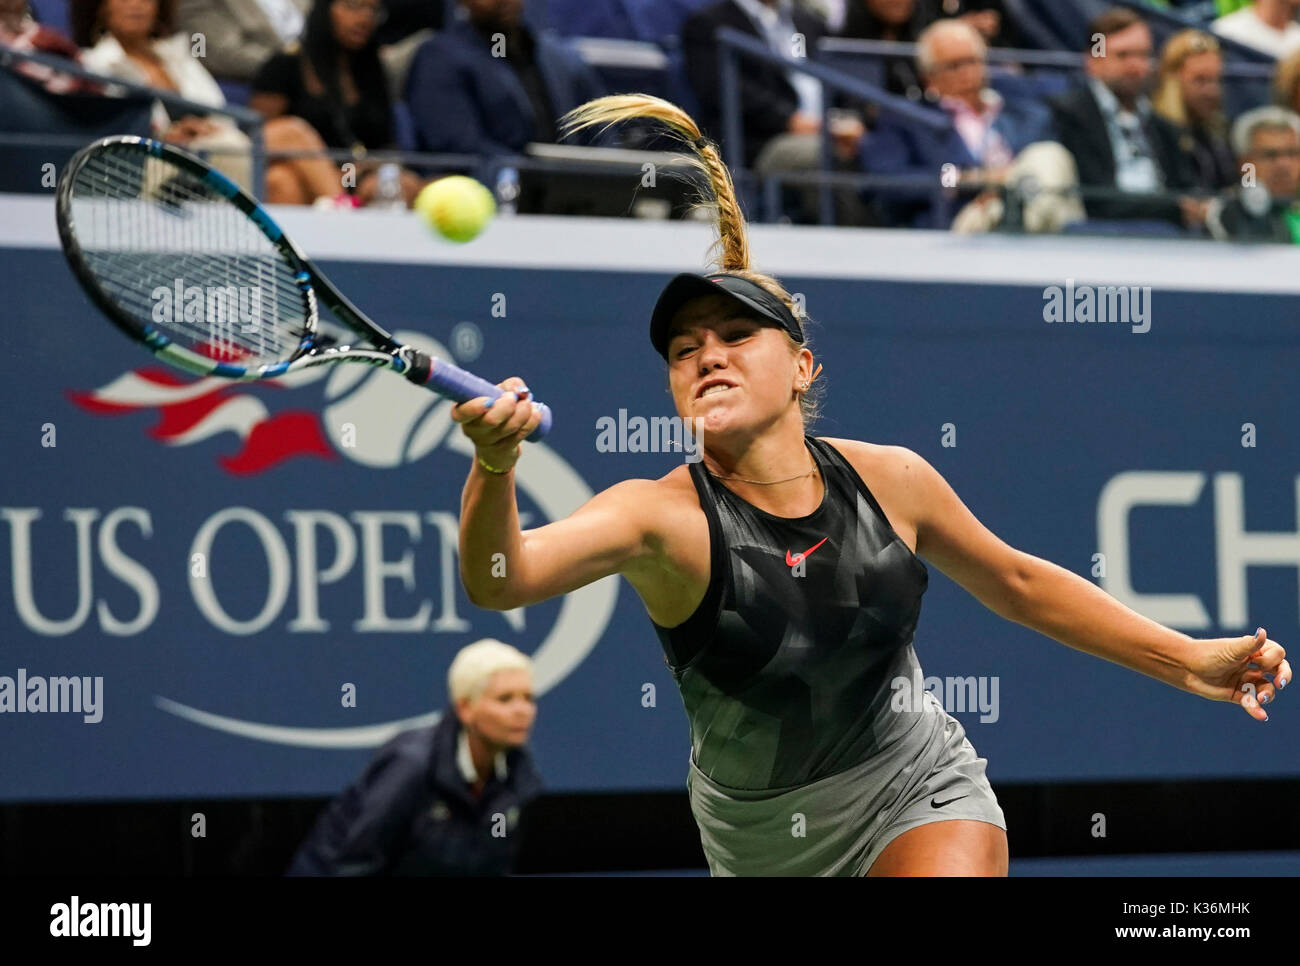 New York Usa 1st Sep 2017 Sofia Kenin Of The United States Hits A Stock Photo Alamy